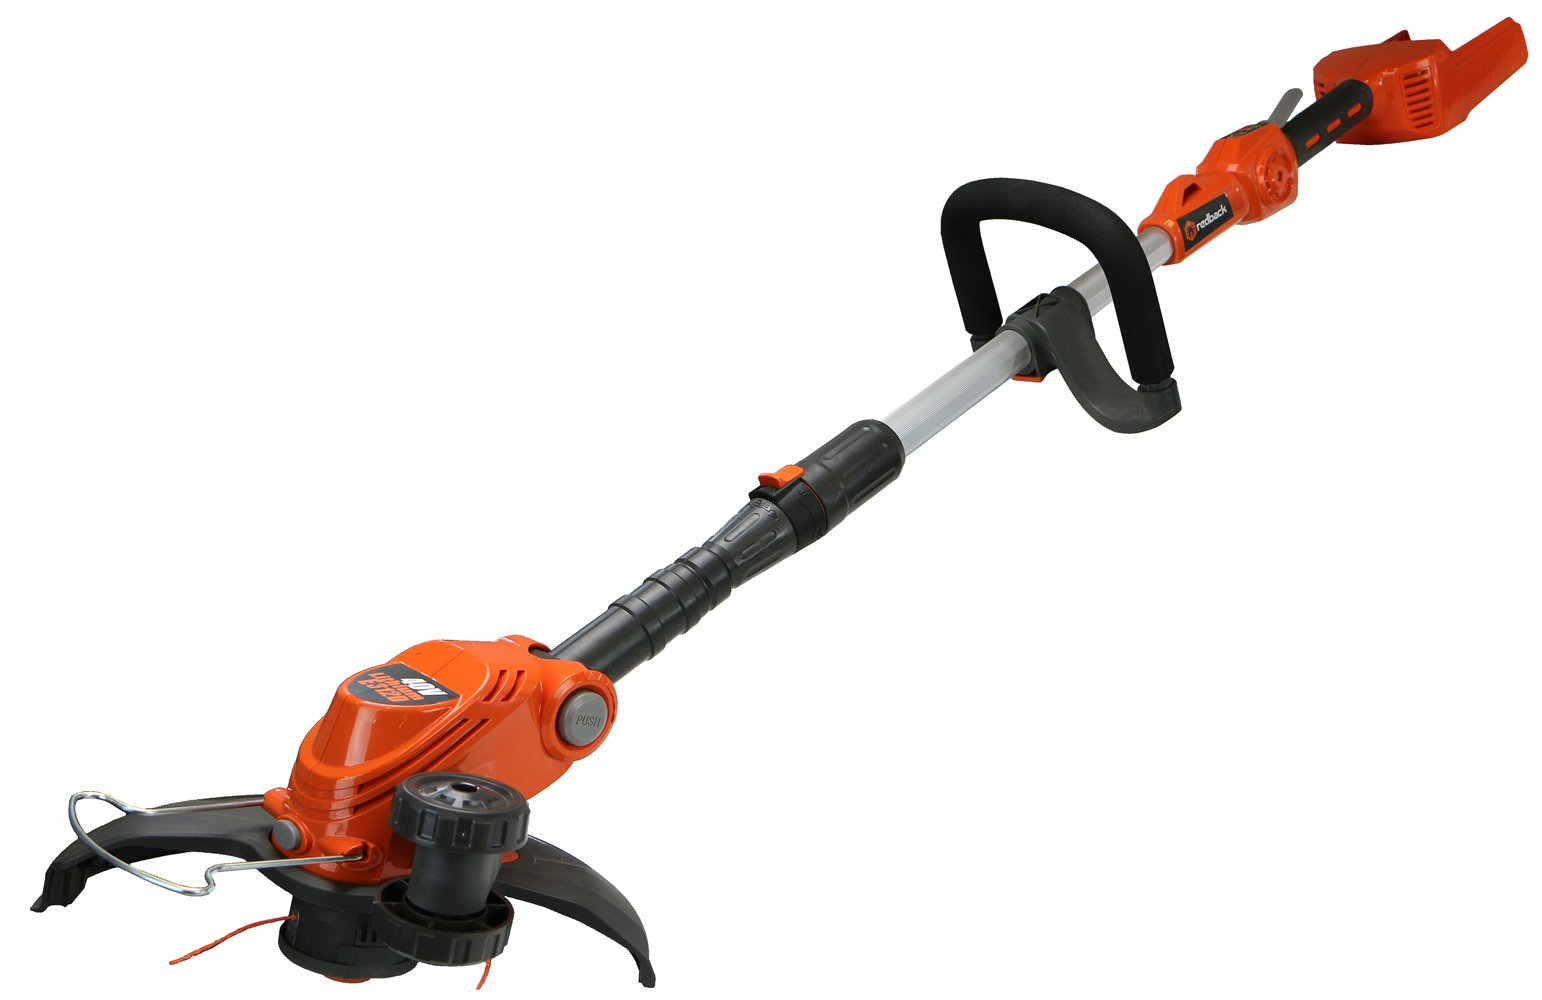 Redback 106065 40V Cordless Li-ion Line Edger/Trimmer - Battery and Charger Not Included